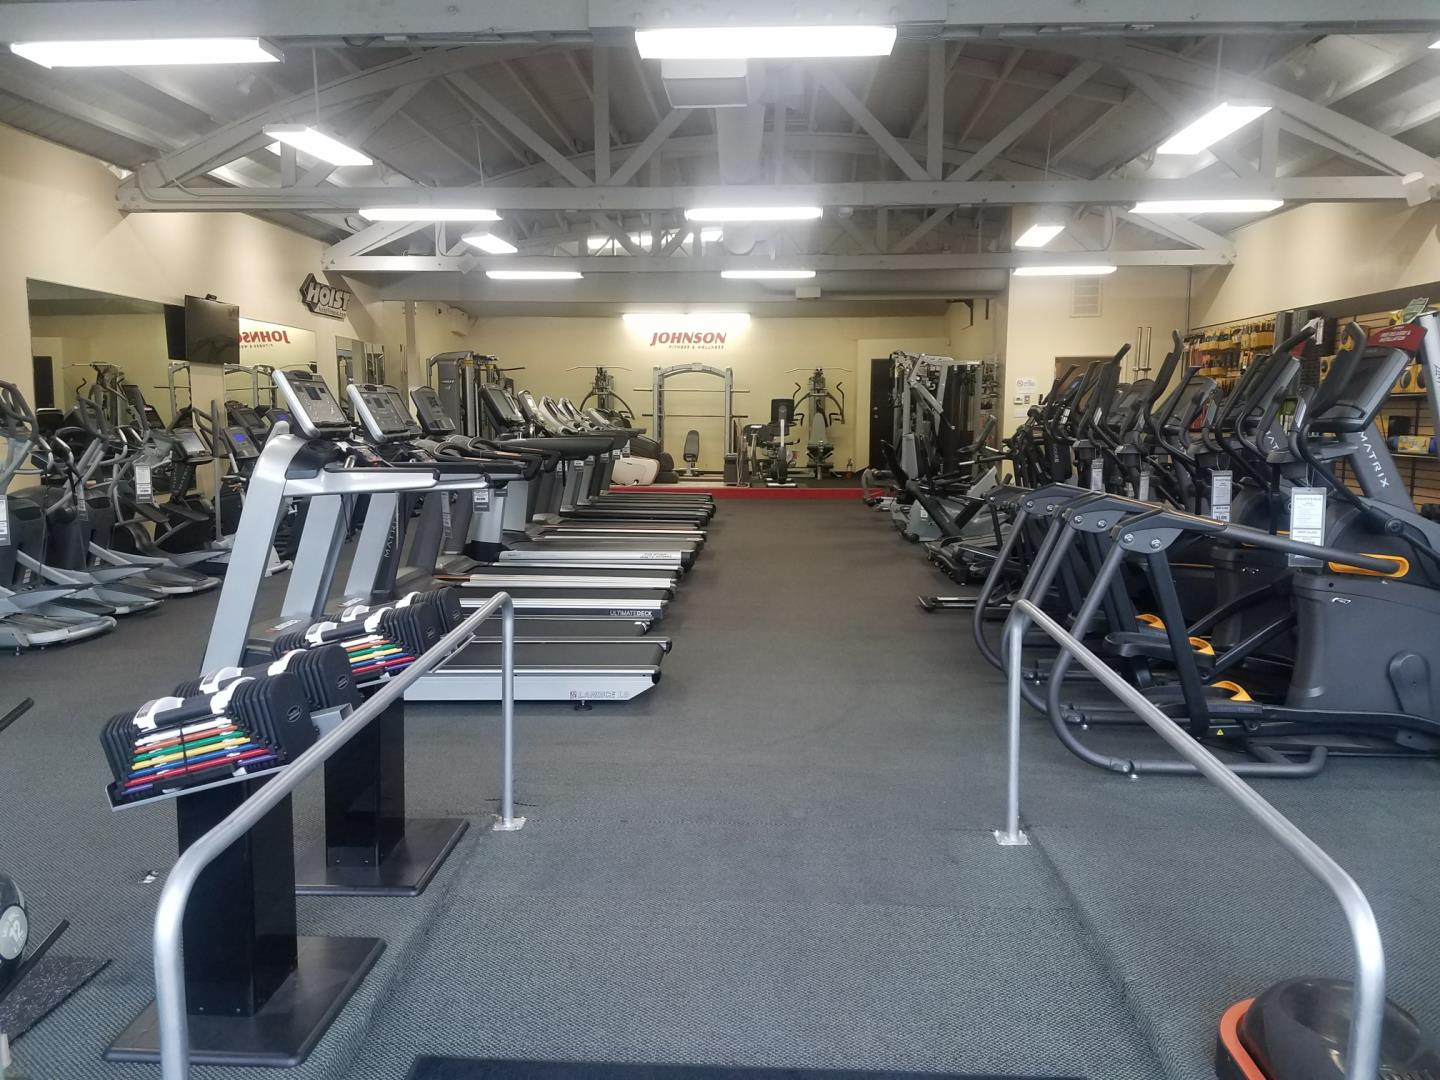 Johnson Fitness & Wellness - West Hollywood, CA